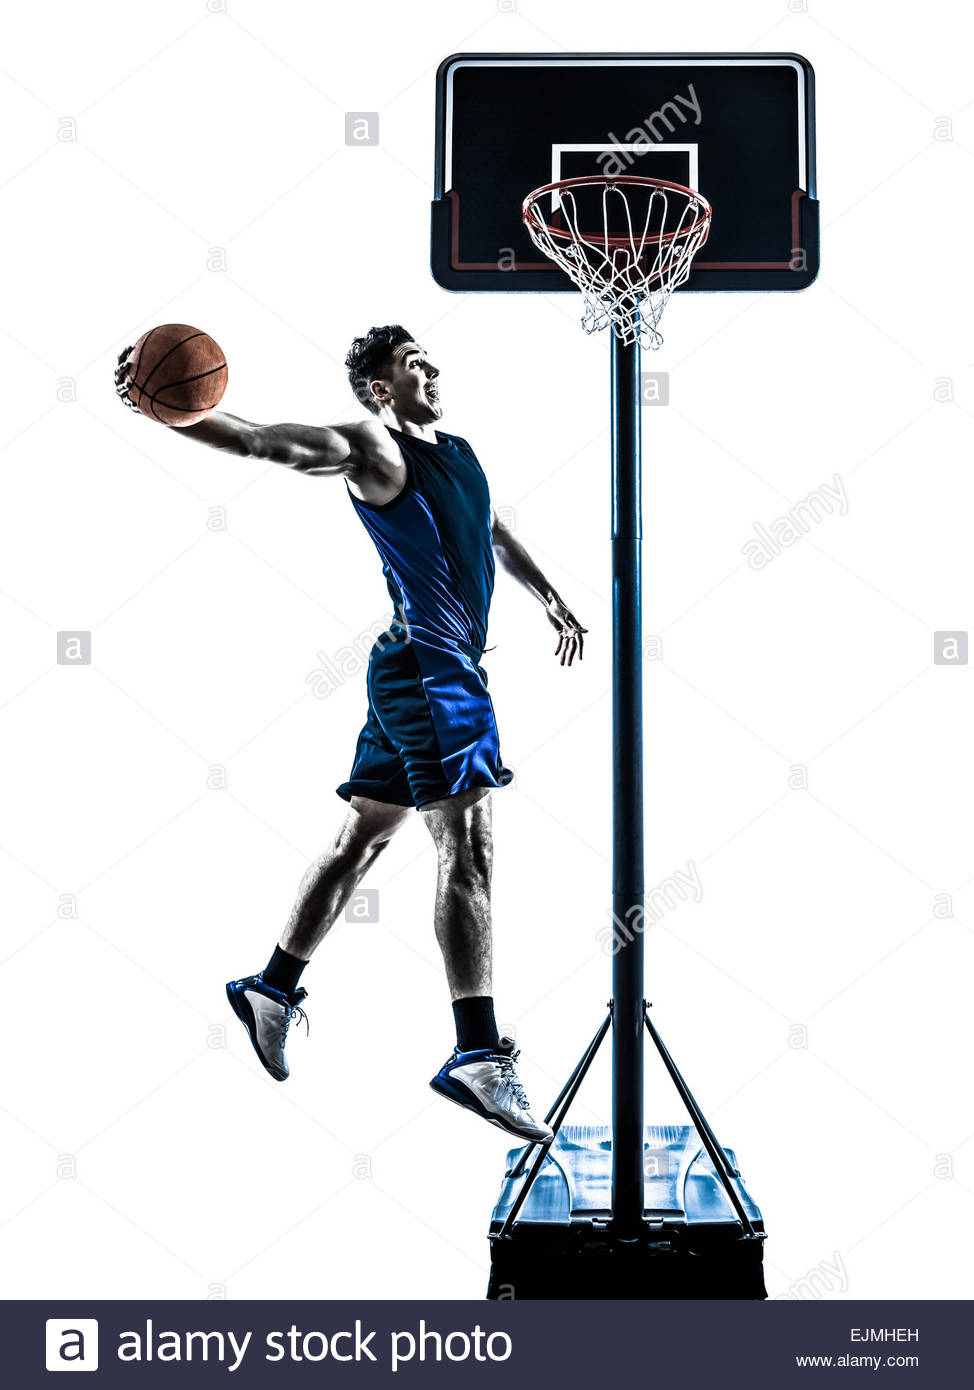 974x1390 One Man Basketball Player Jumping Dunking In Silhouette Isolated